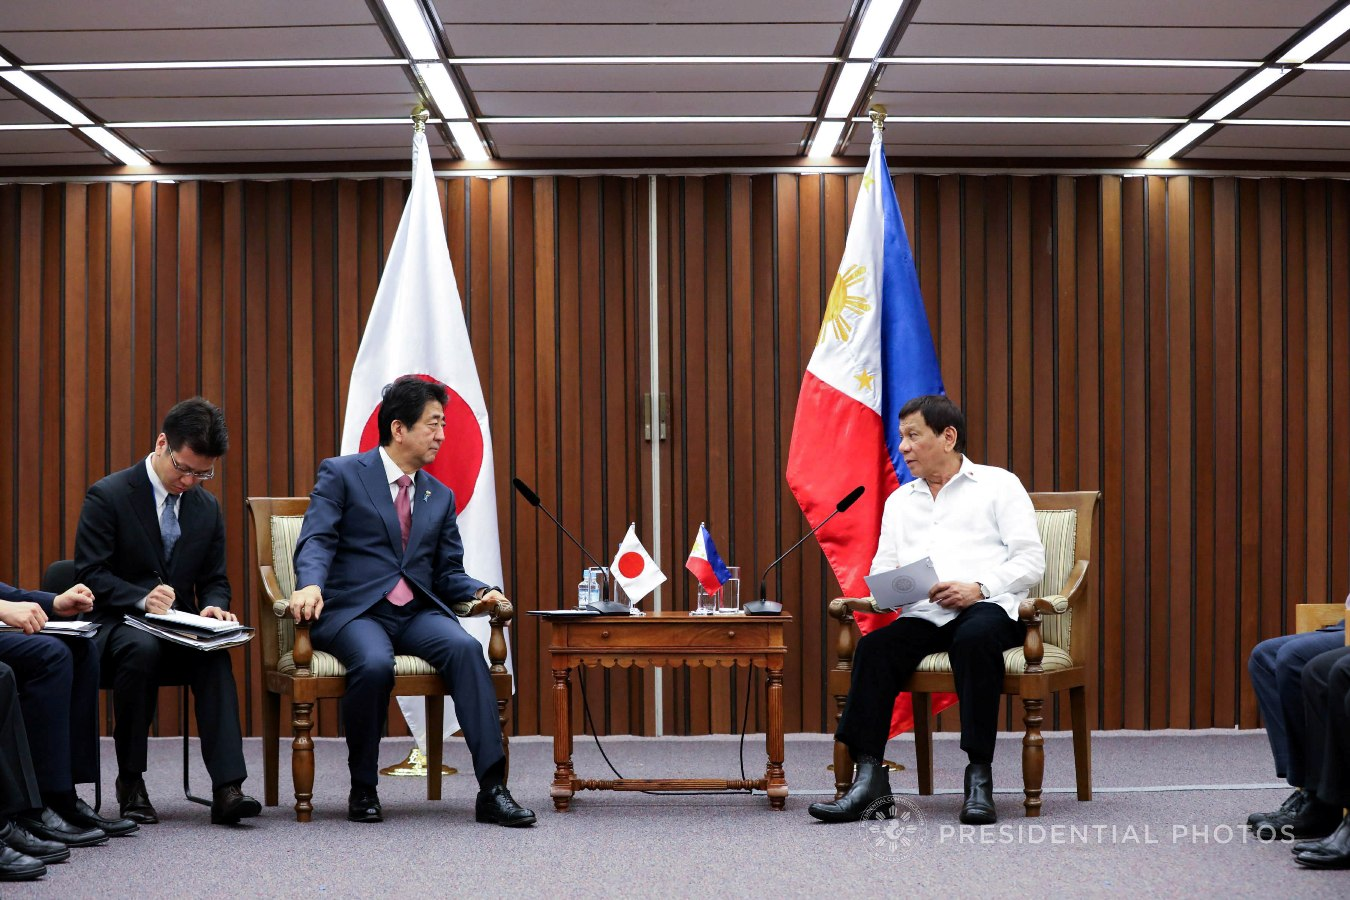 President Rodrigo Roa Duterte and Japan Prime Minister Shinzo Abe discuss matters during their bilateral meeting at the Philippine International Convention Center in Pasay City on November 13, 2017. KARL NORMAN ALONZO/PRESIDENTIAL PHOTO